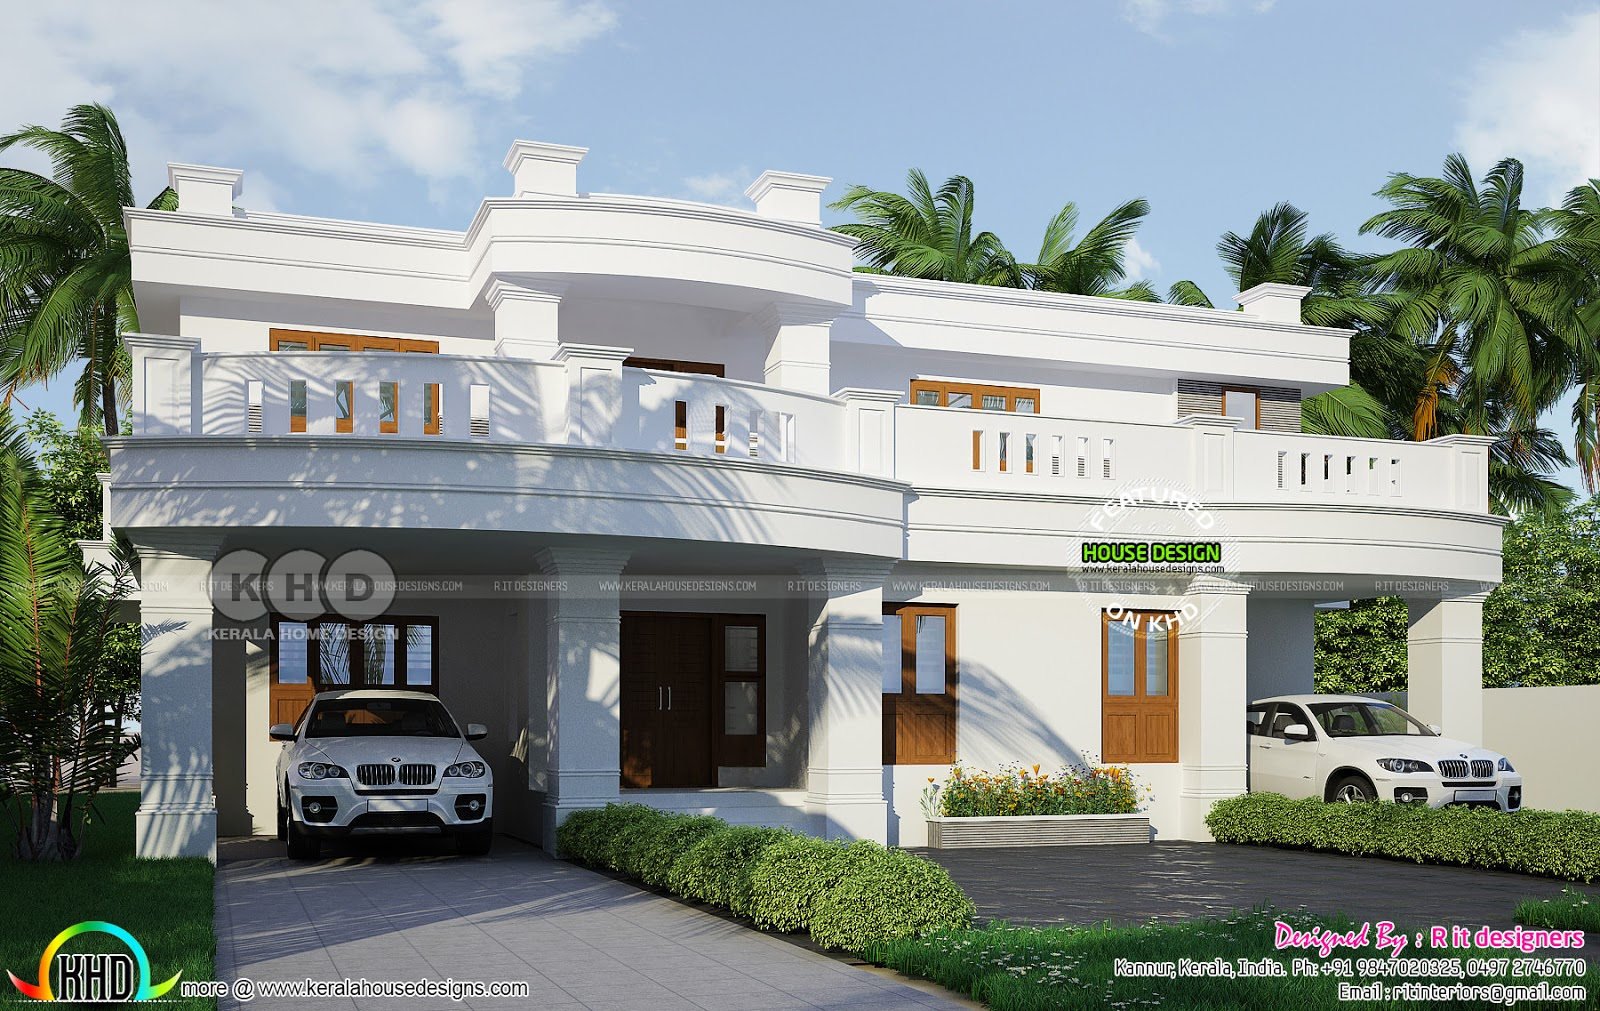 2 car porch home in decorative style - Kerala home design ...